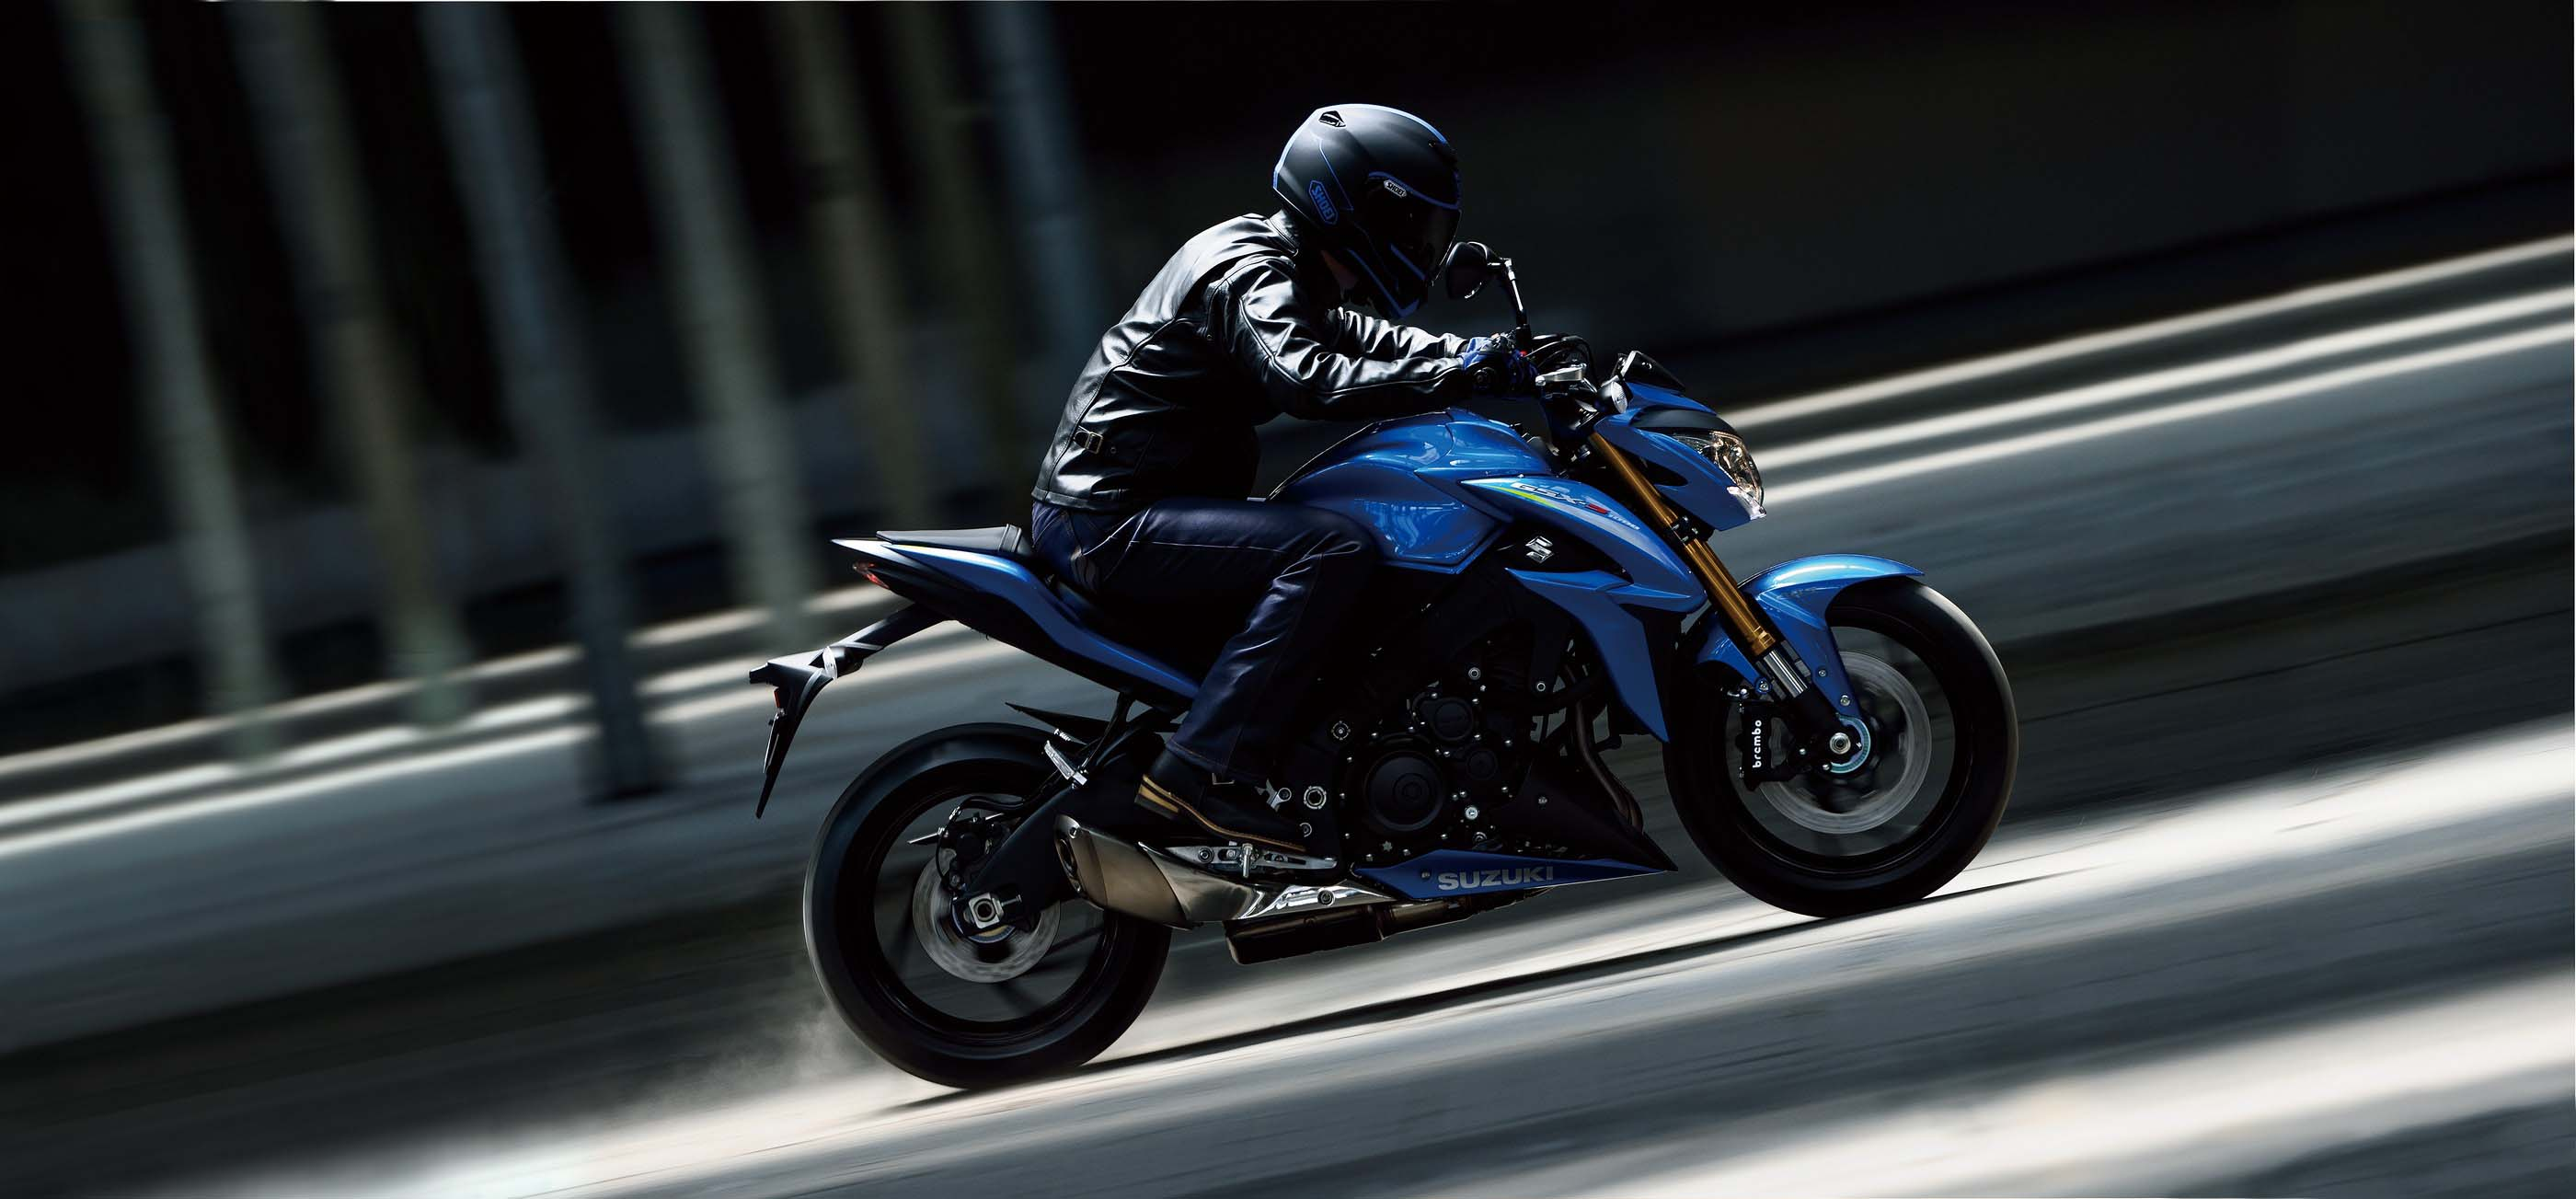 2018 suzuki gsx s1000. beautiful suzuki 2015suzukigsxs100003 throughout 2018 suzuki gsx s1000